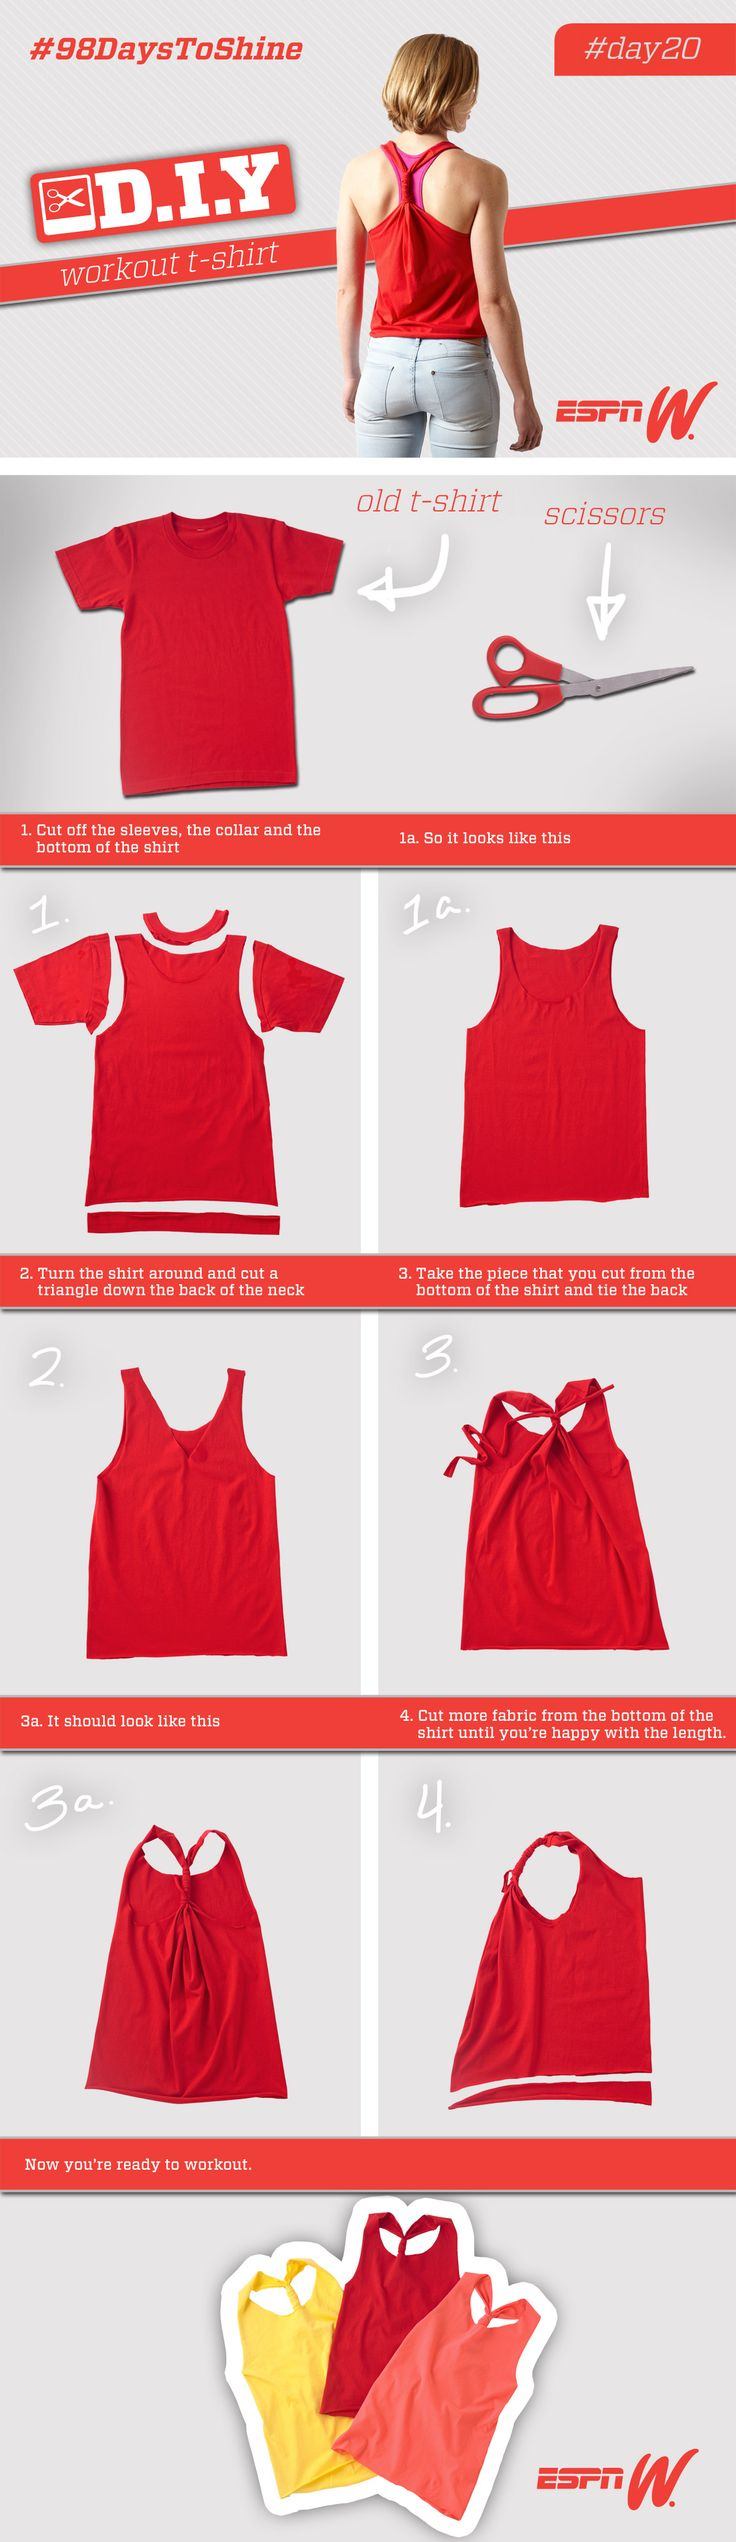 Learn How To Turn An Old Tshirt Into The Perfect Workout Top Visit